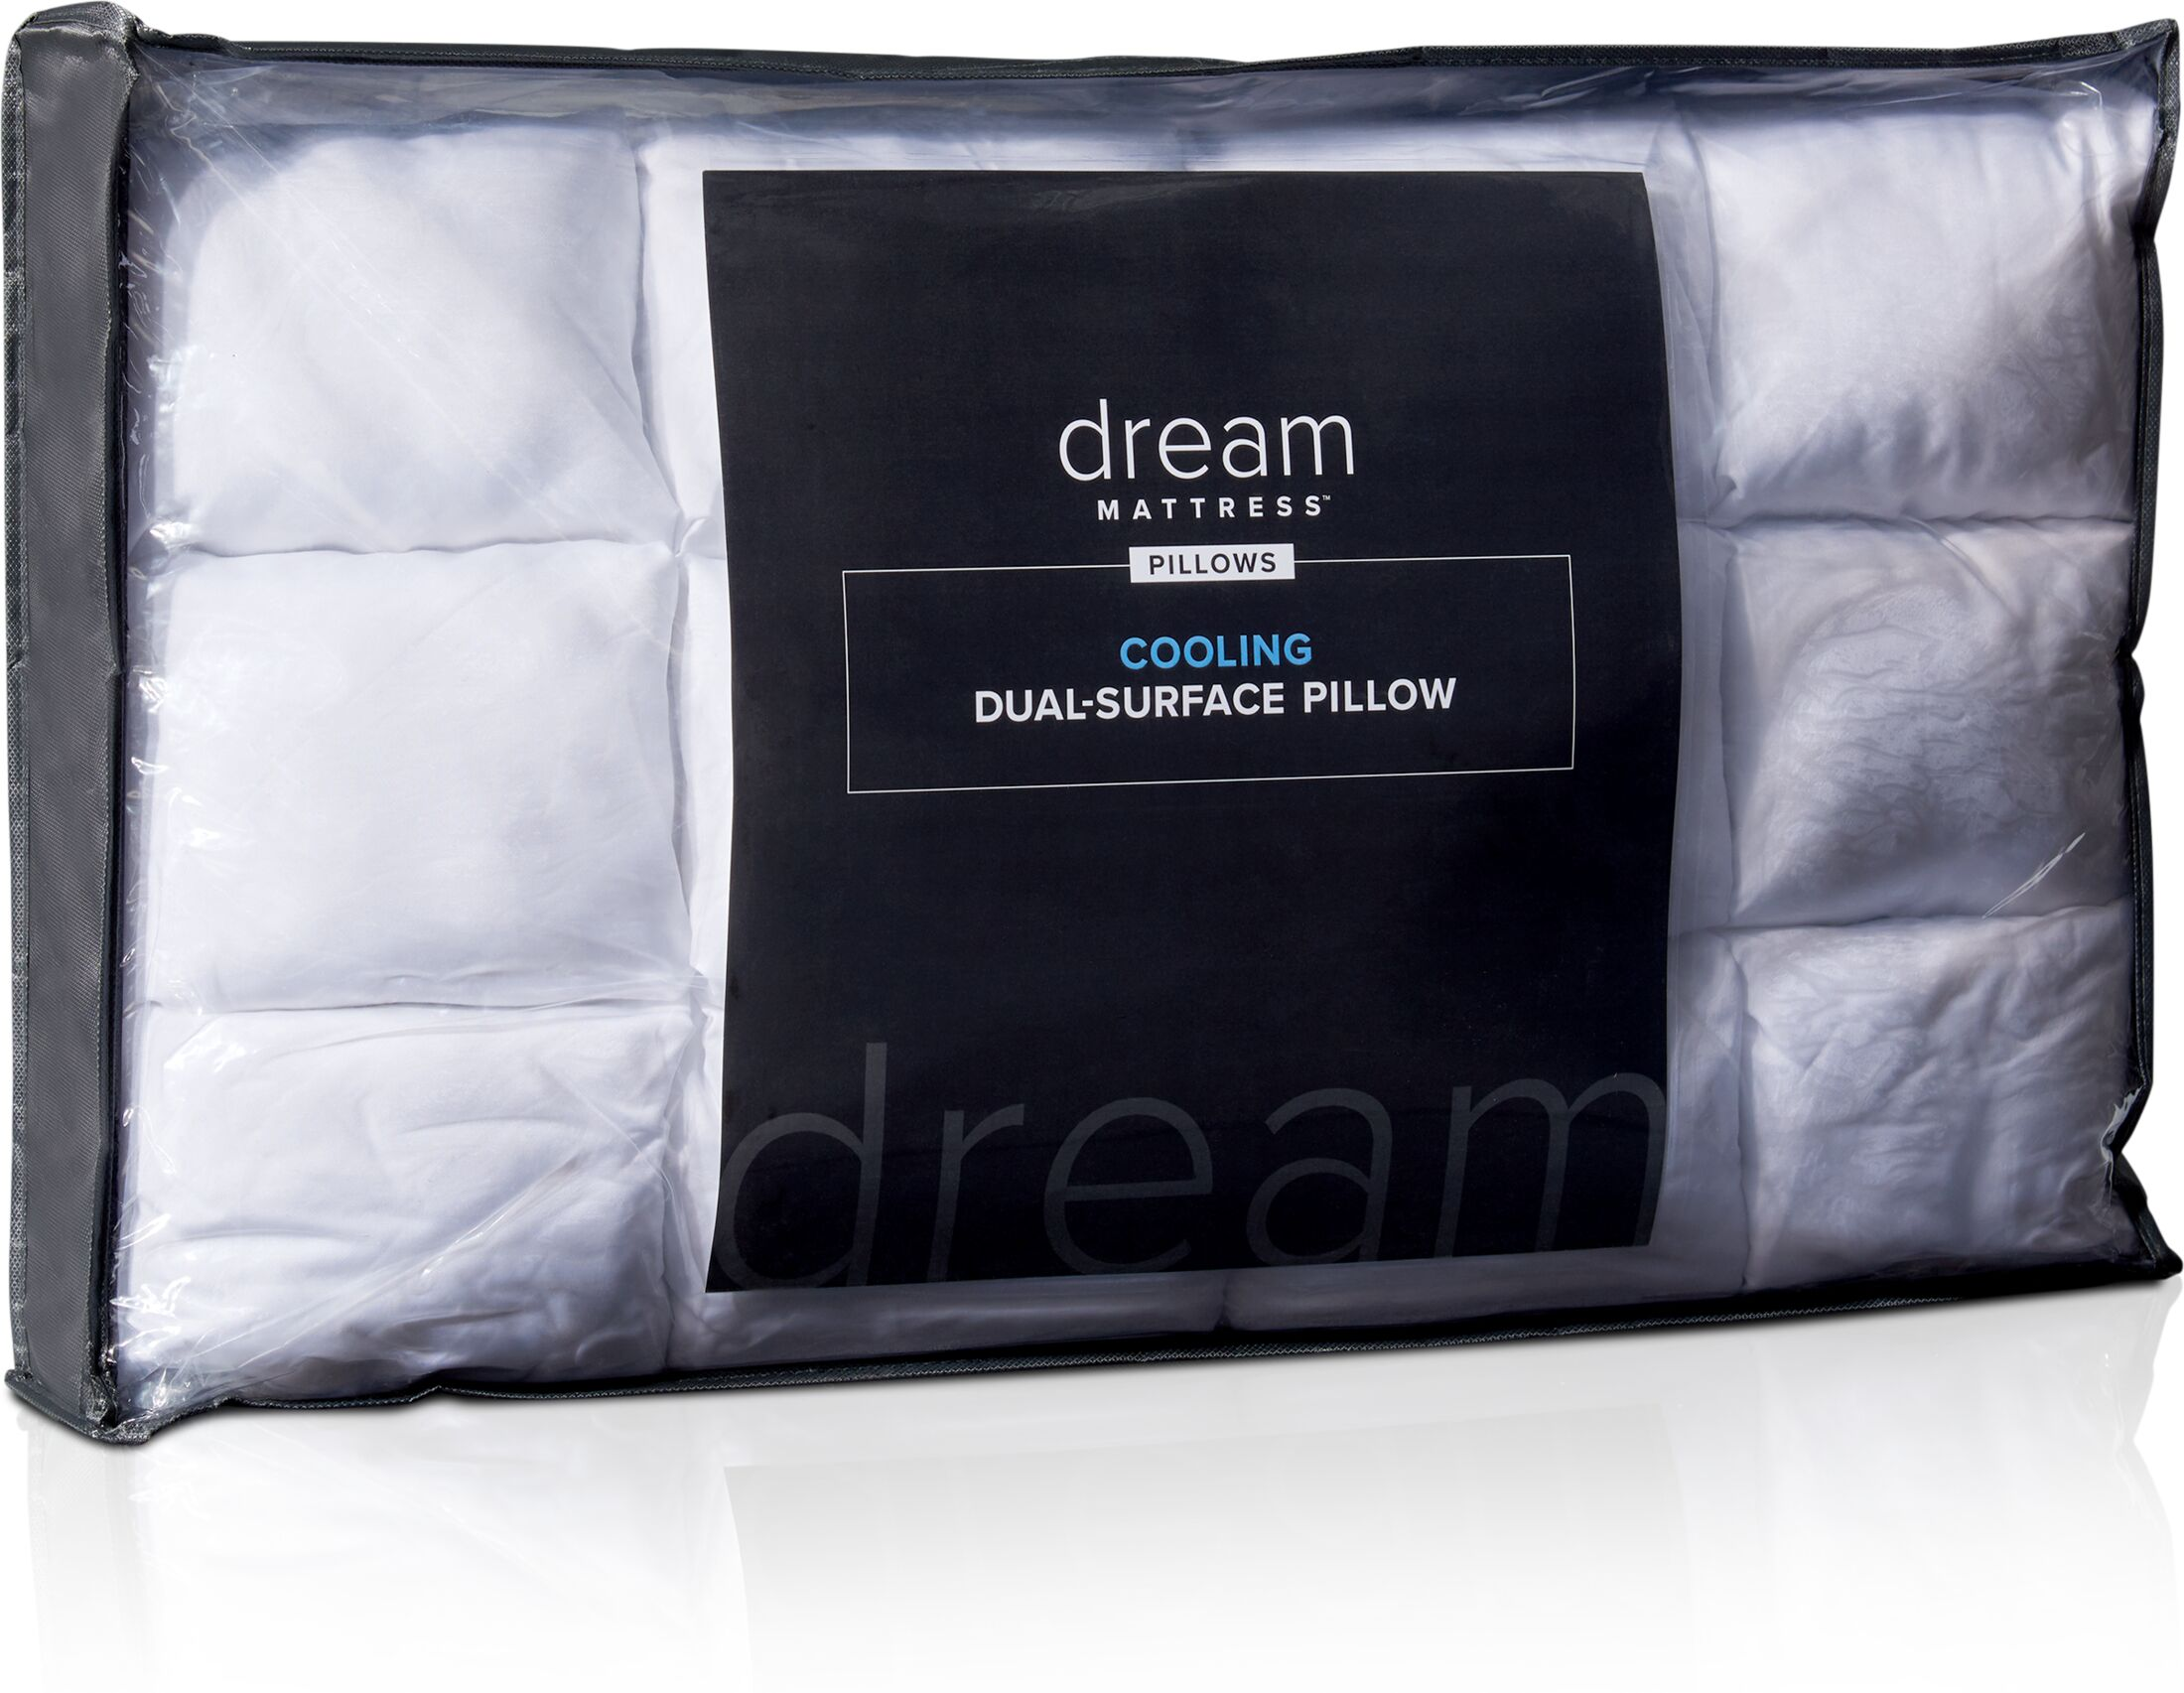 Mattresses and Bedding - Dream Dual-Surface Cooling Pillow